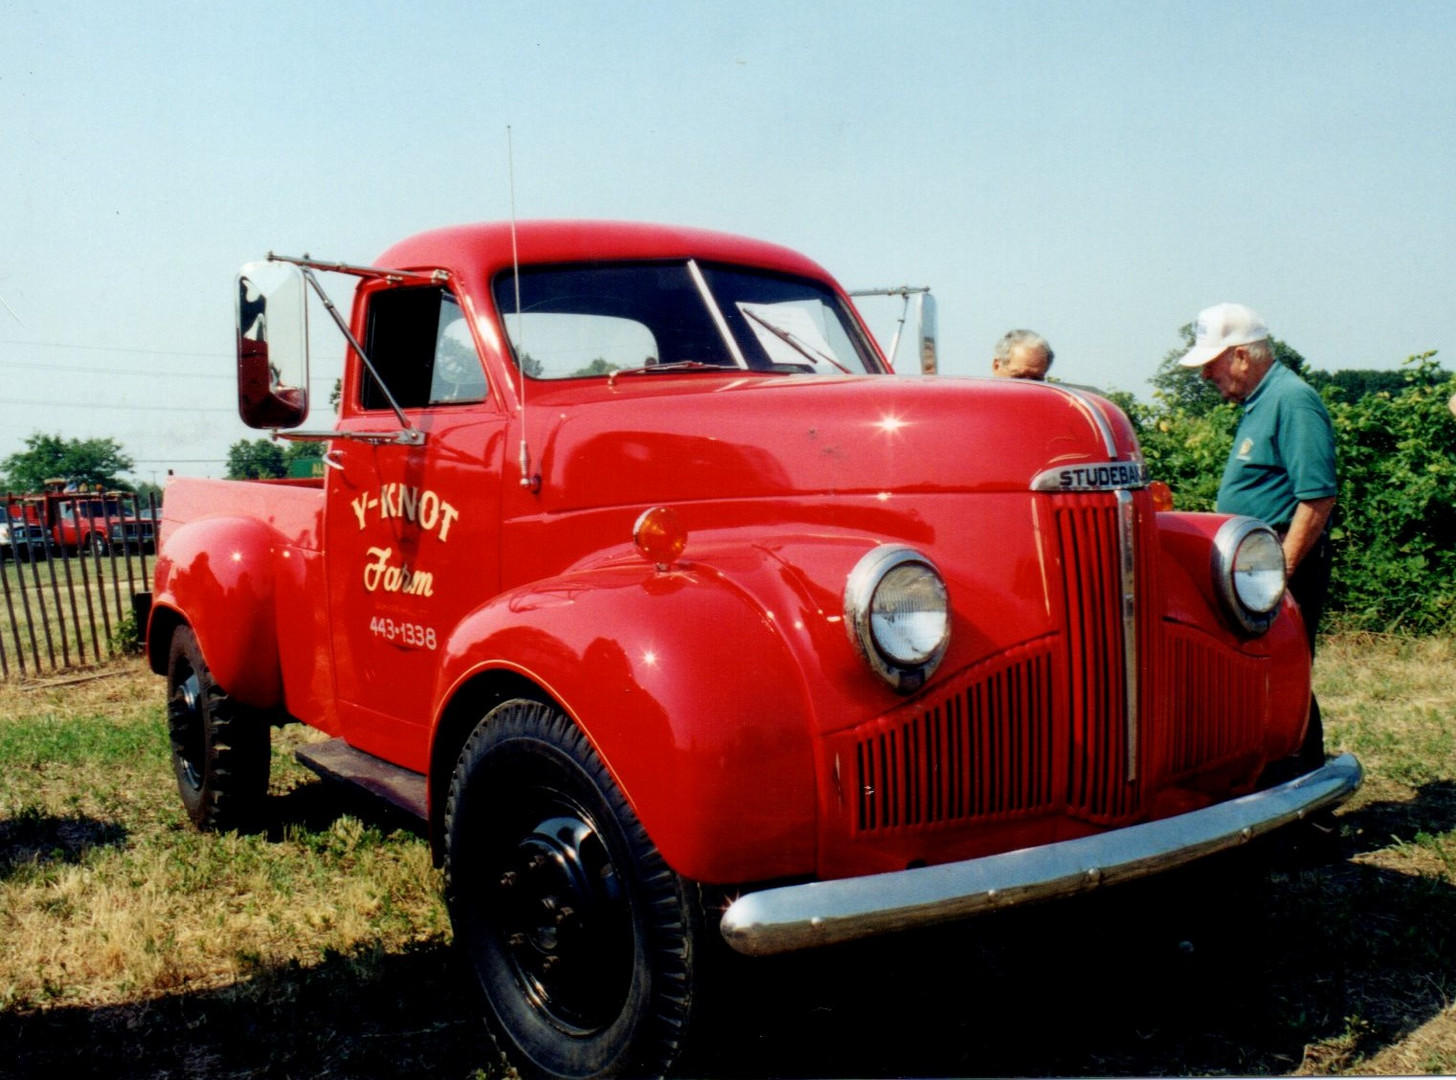 1947 Studebaker pickup from Connecticut